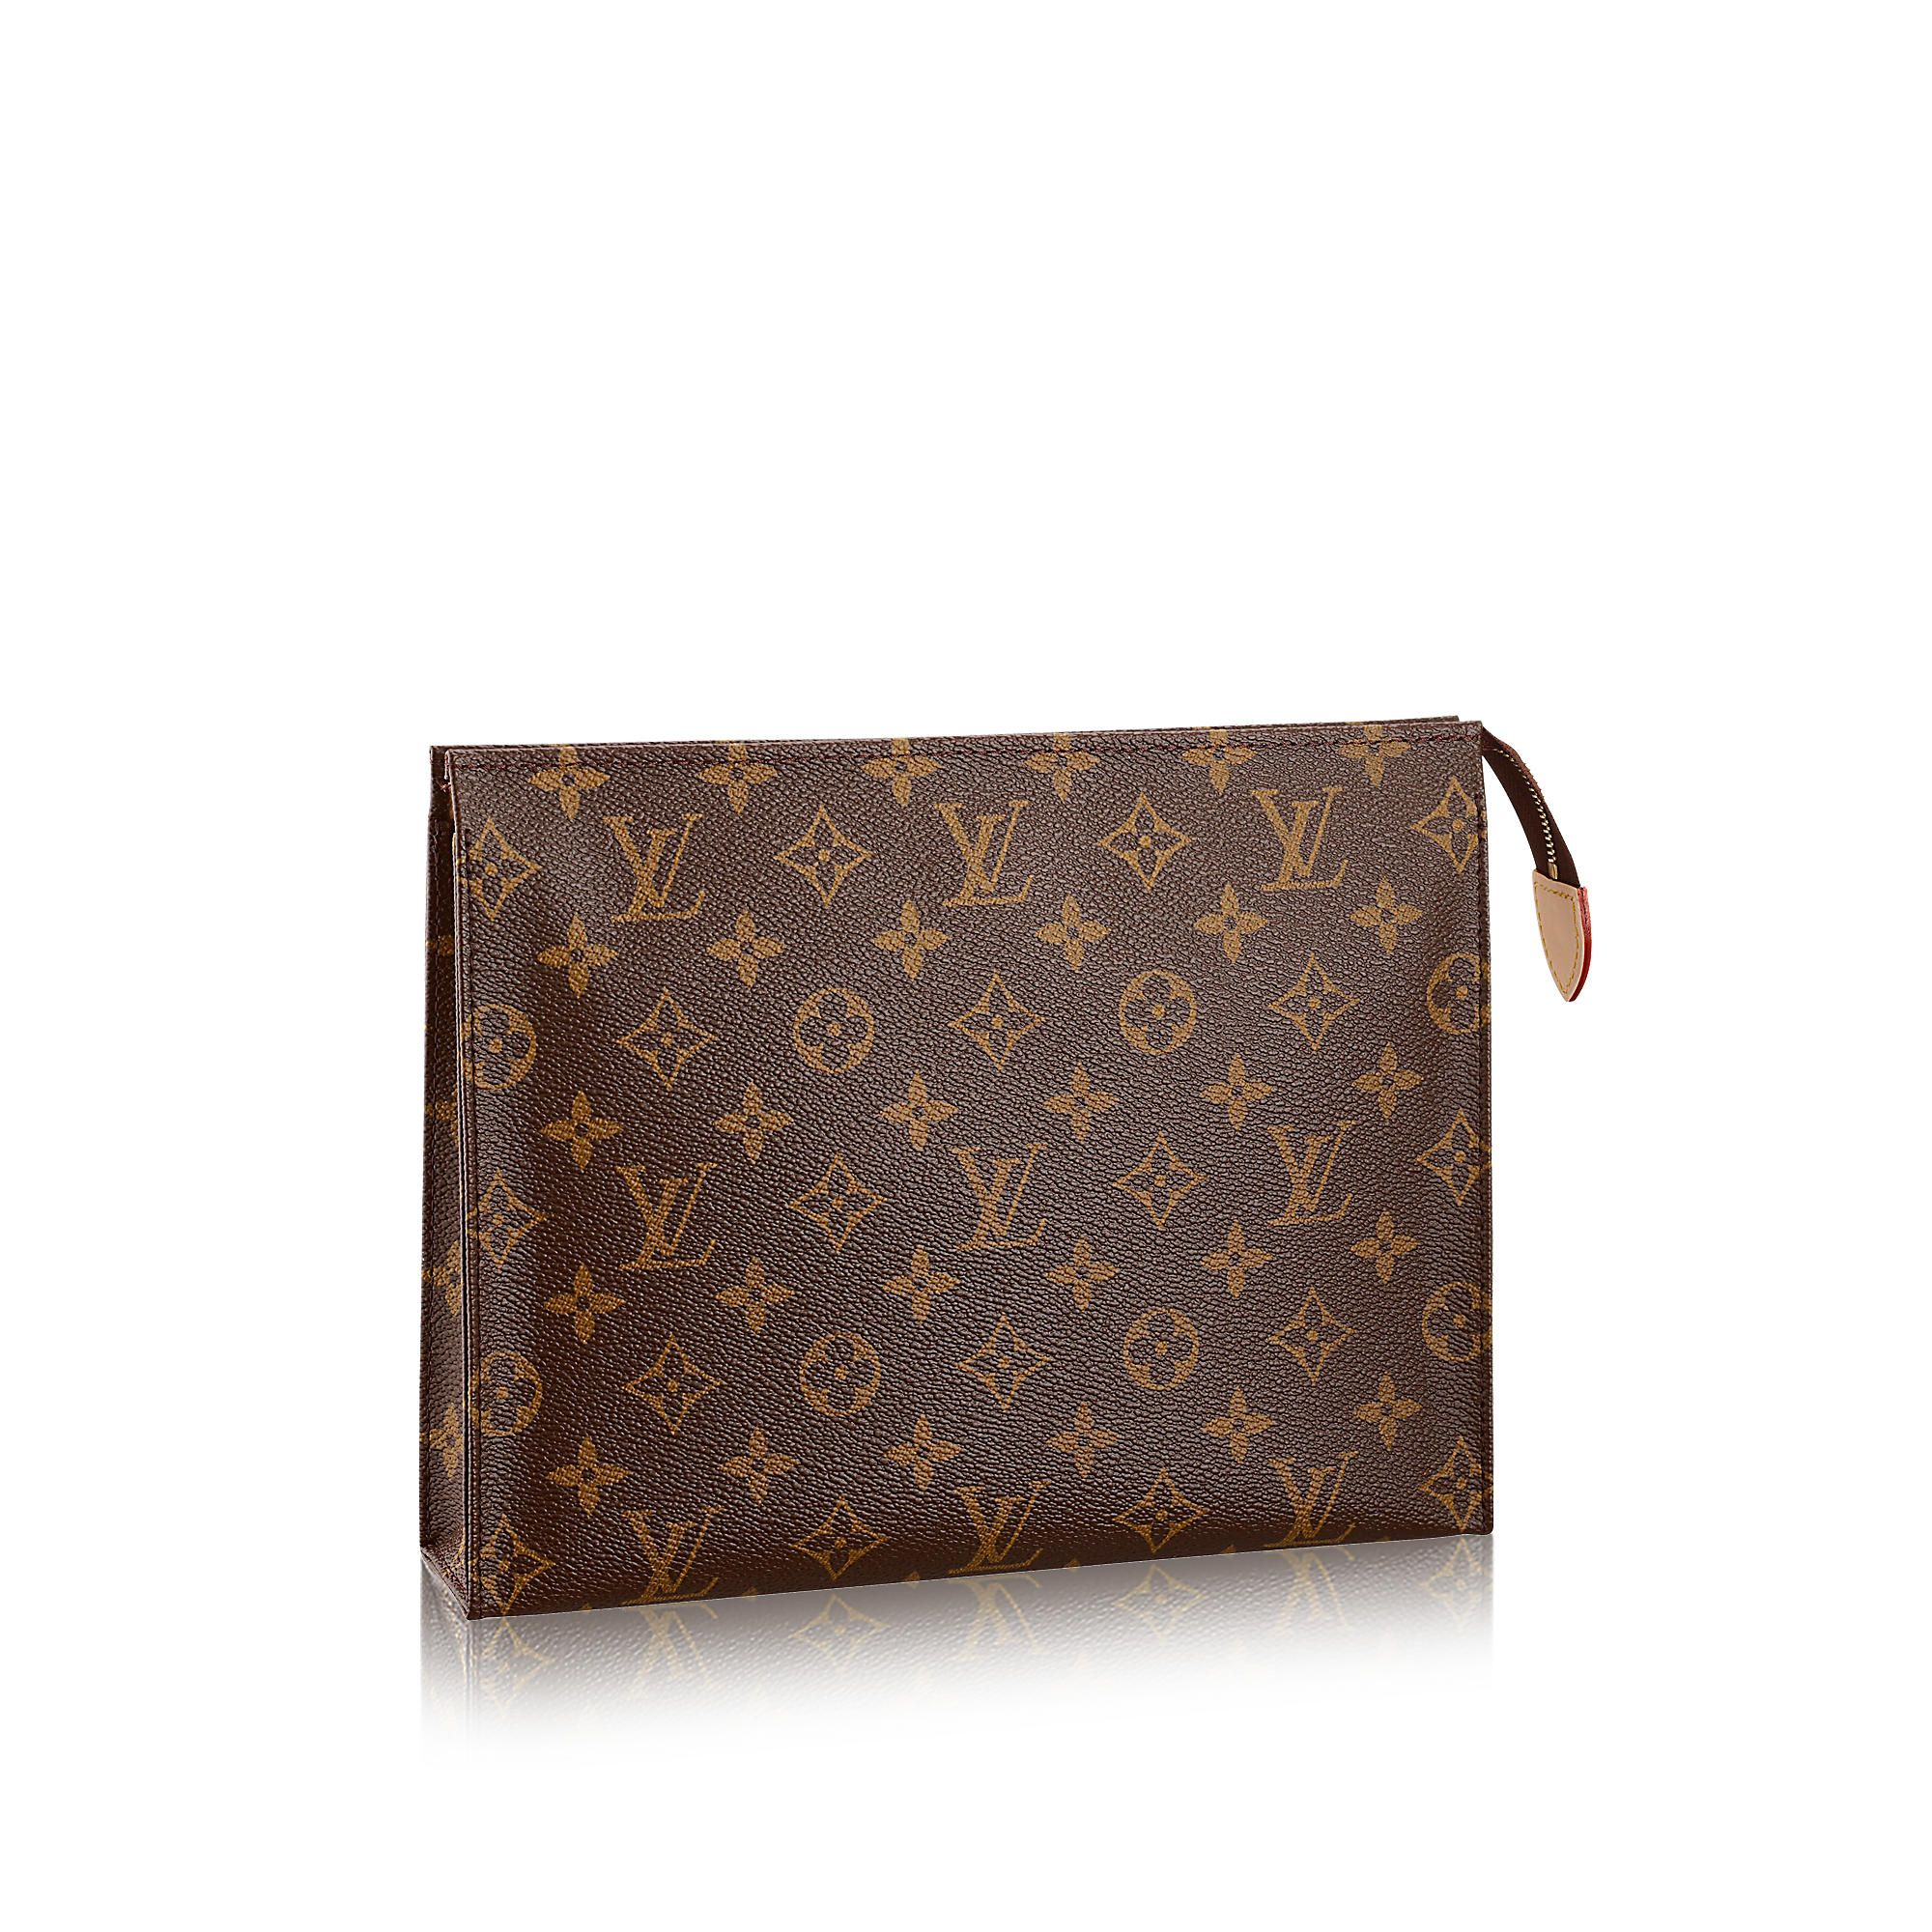 920c88e63ad Louis Vuitton Toiletry Pouch 26 via Louis Vuitton